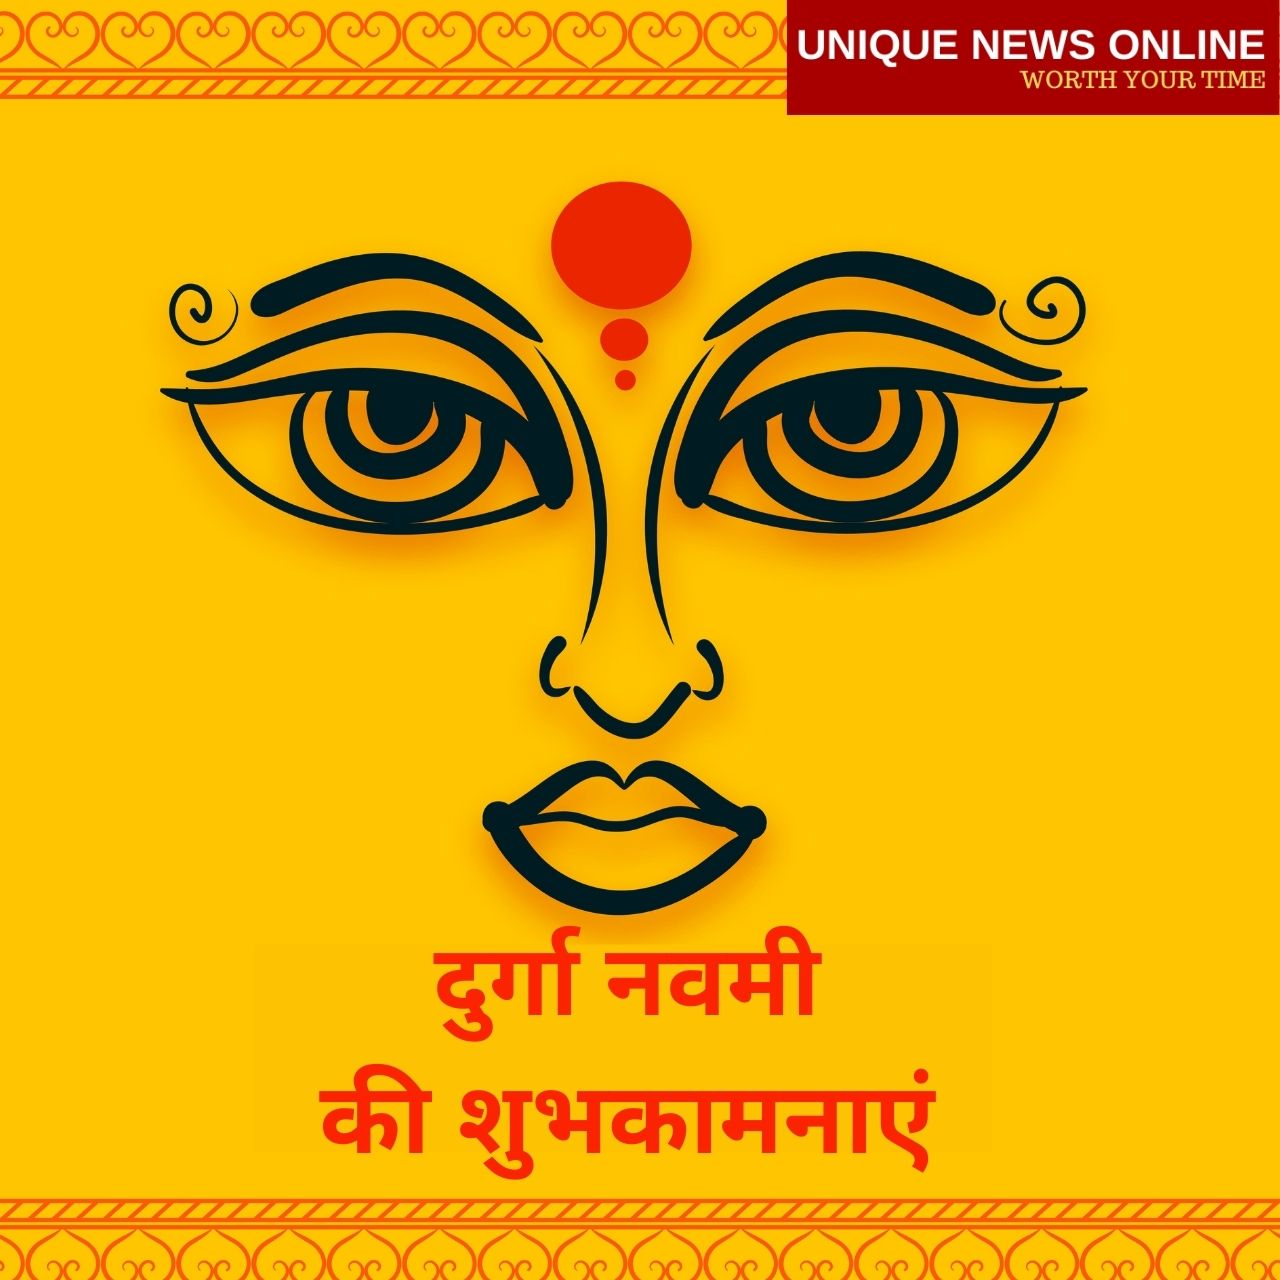 Happy Durga Navami 2021 Wishes in Hindi, Messages, Greetings, Quotes, and Images to share on Maha Navam